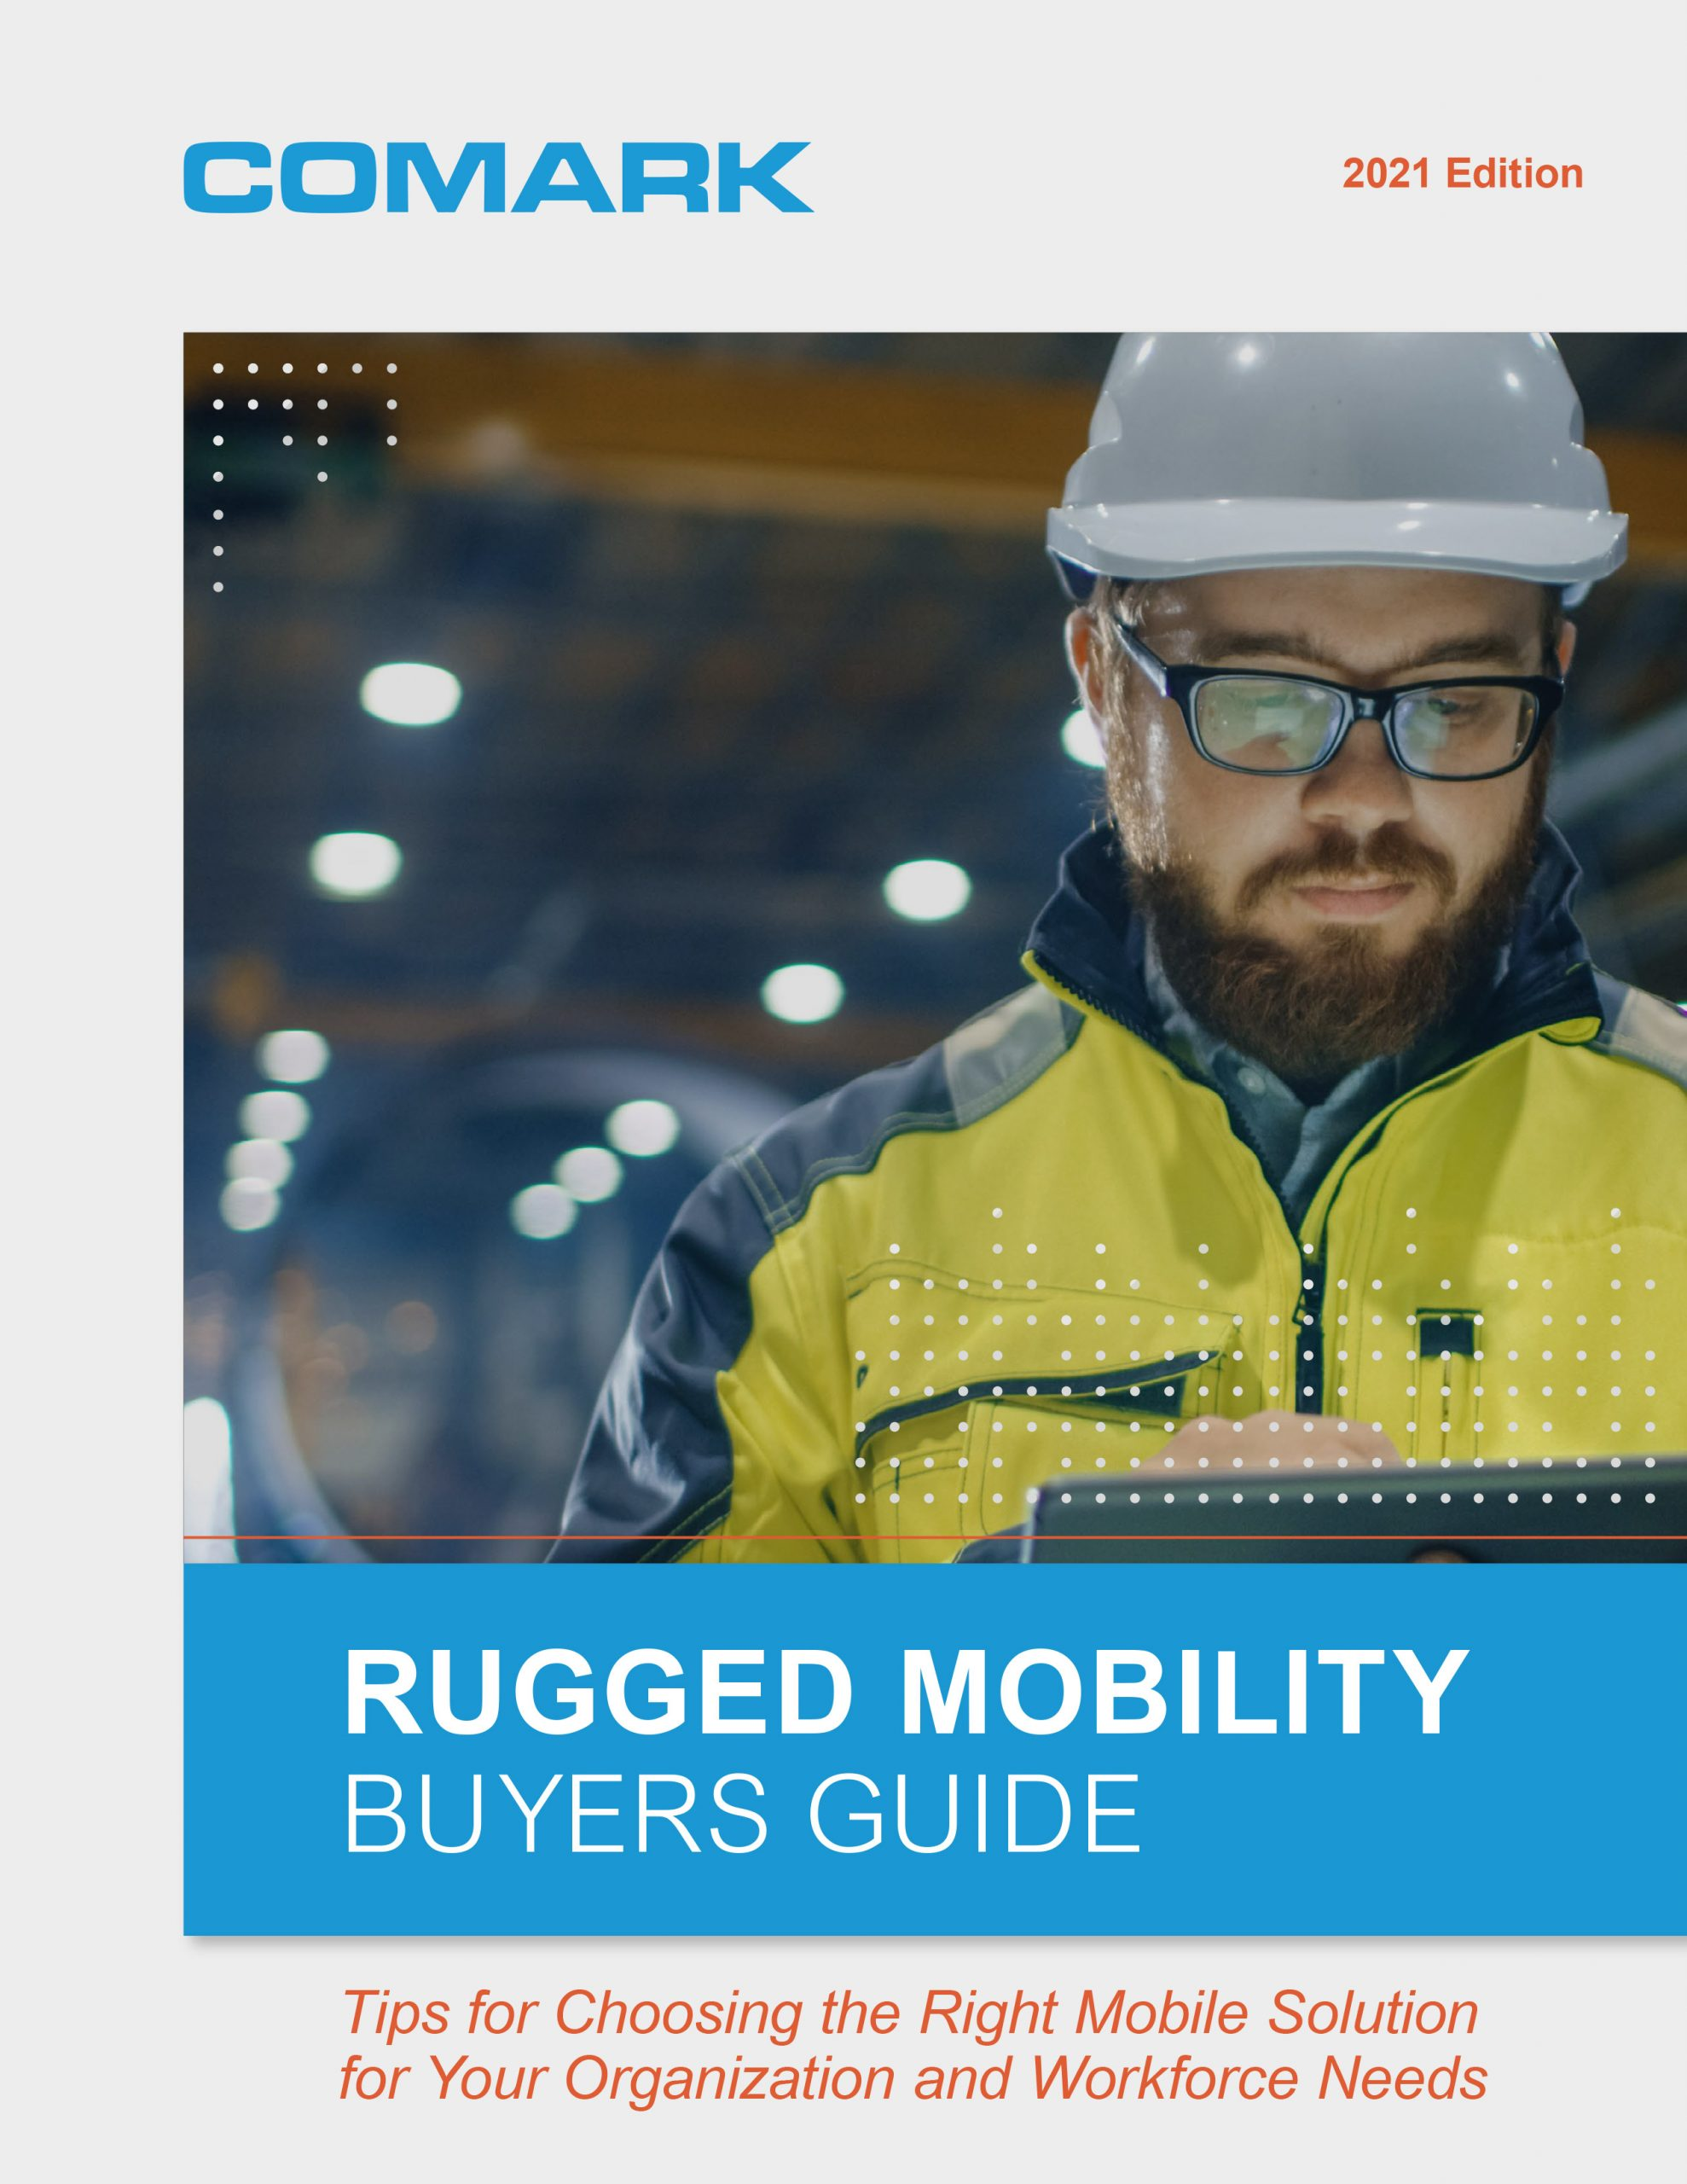 Comark Rugged Mobility Buyers Guide